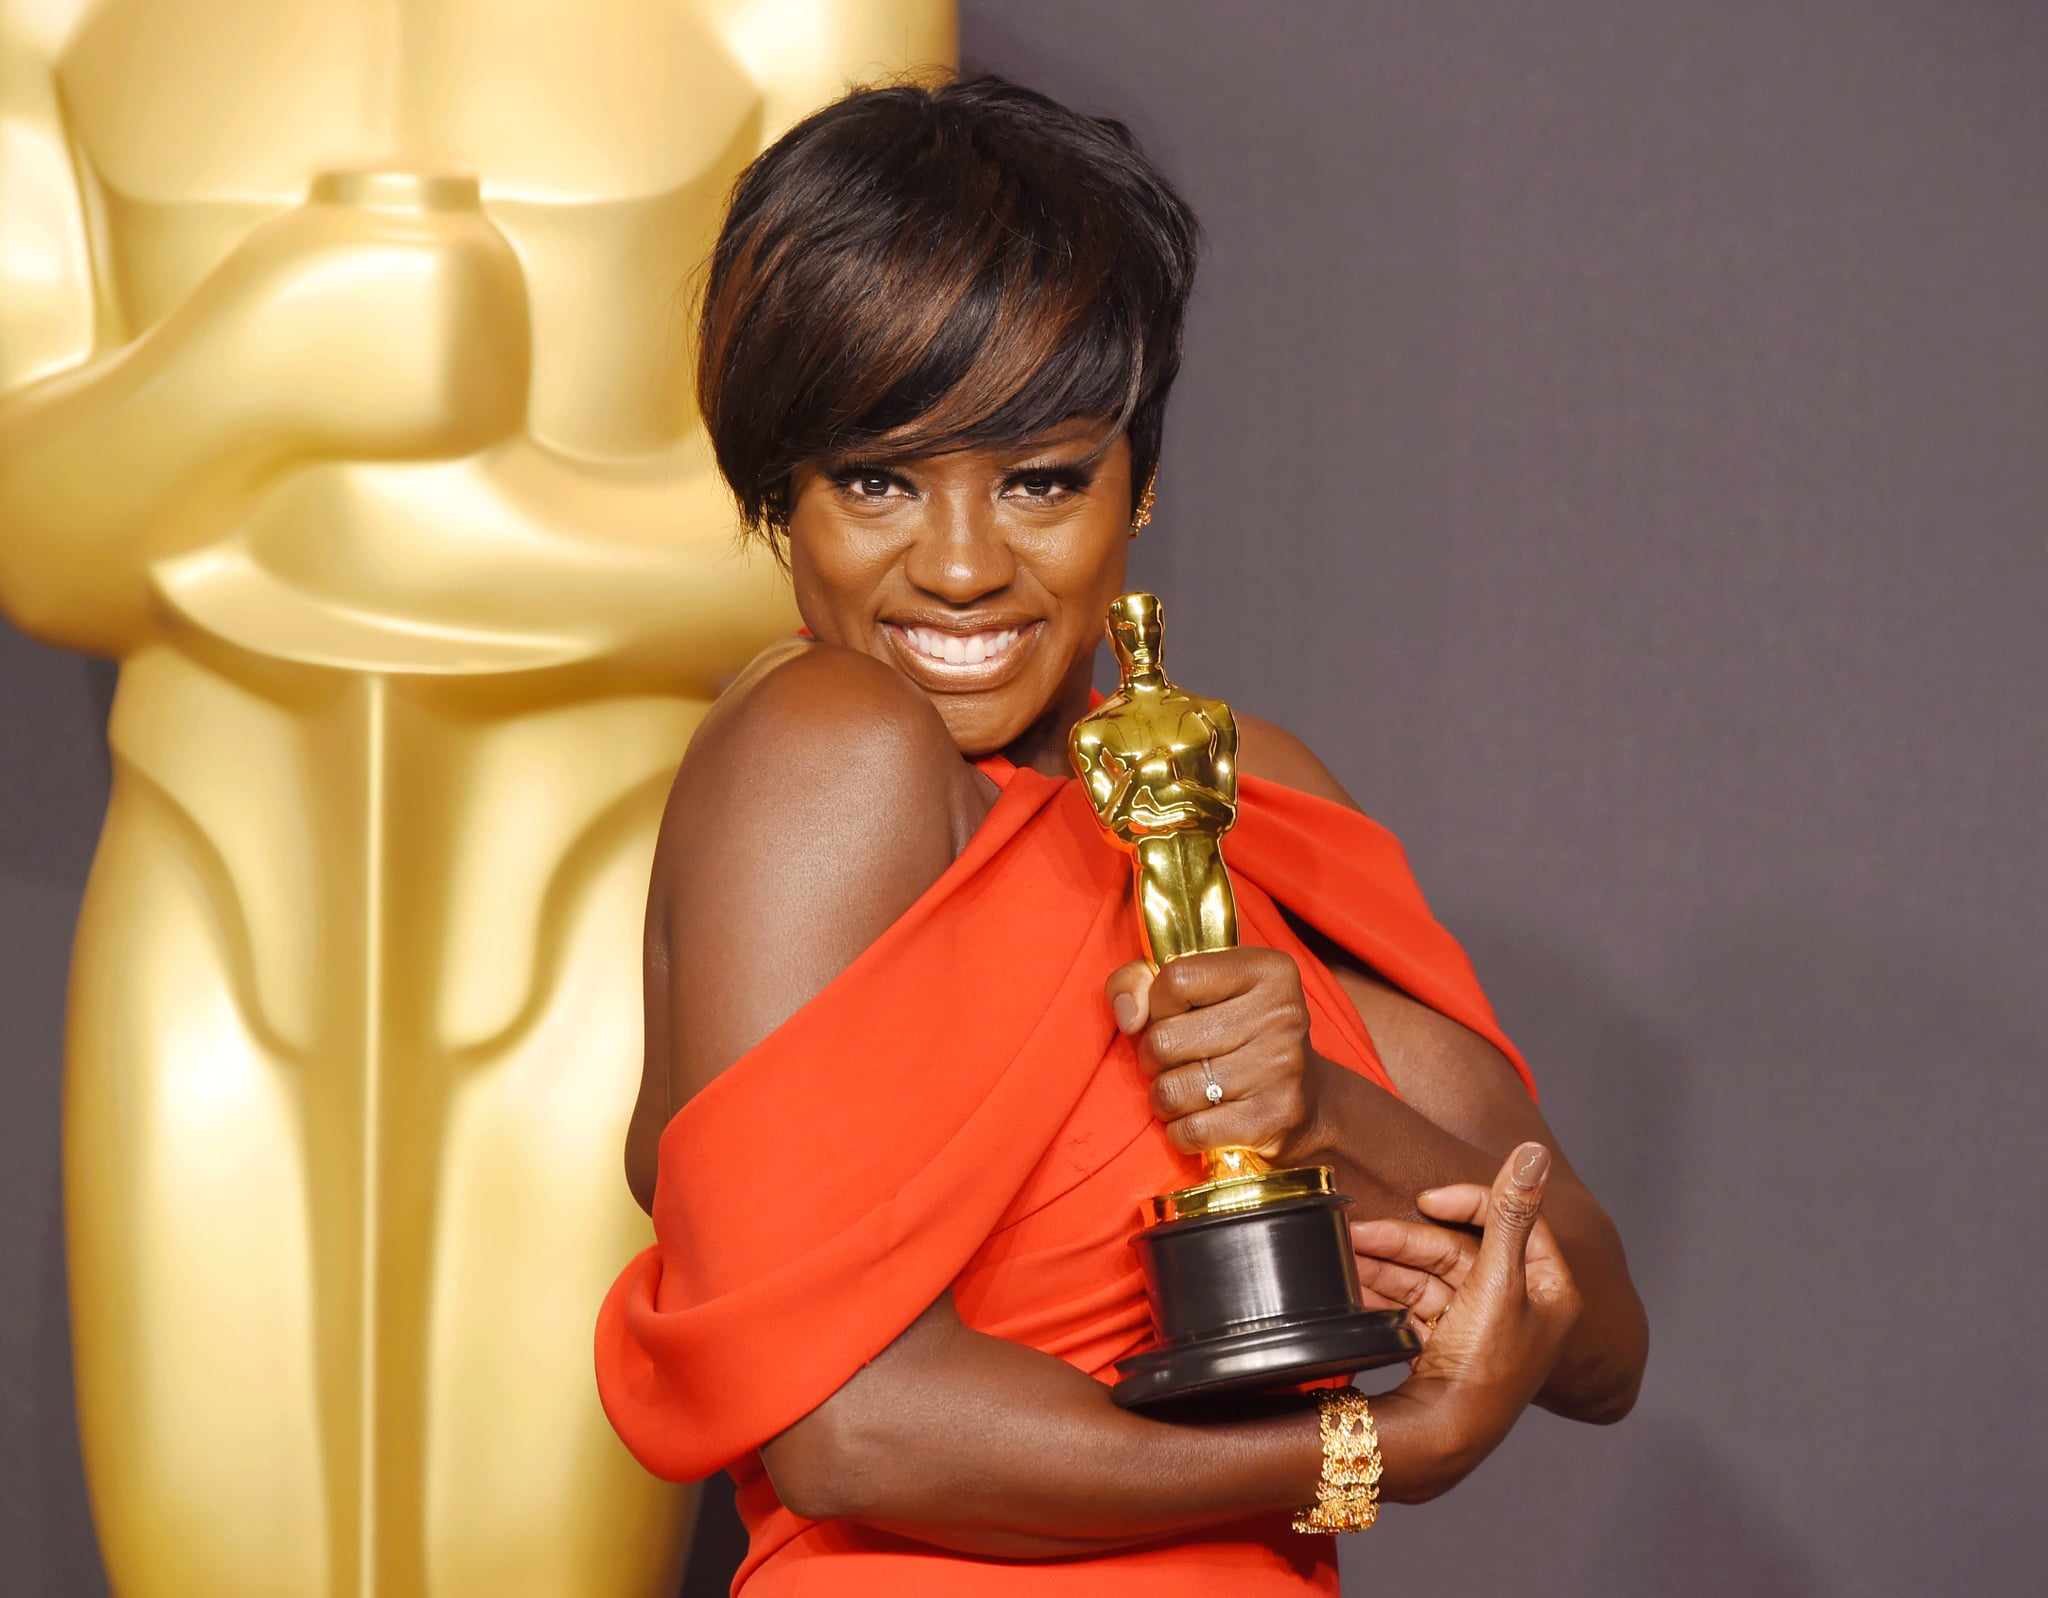 HOLLYWOOD, CA - FEBRUARY 26: Actress Viola Davis, winner of the award for Actress in a Supporting Role for 'Fences,' poses in the press room during the 89th Annual Academy Awards at Hollywood & Highland Center on February 26, 2017 in Hollywood, California. (Photo by Jeffrey Mayer/WireImage)